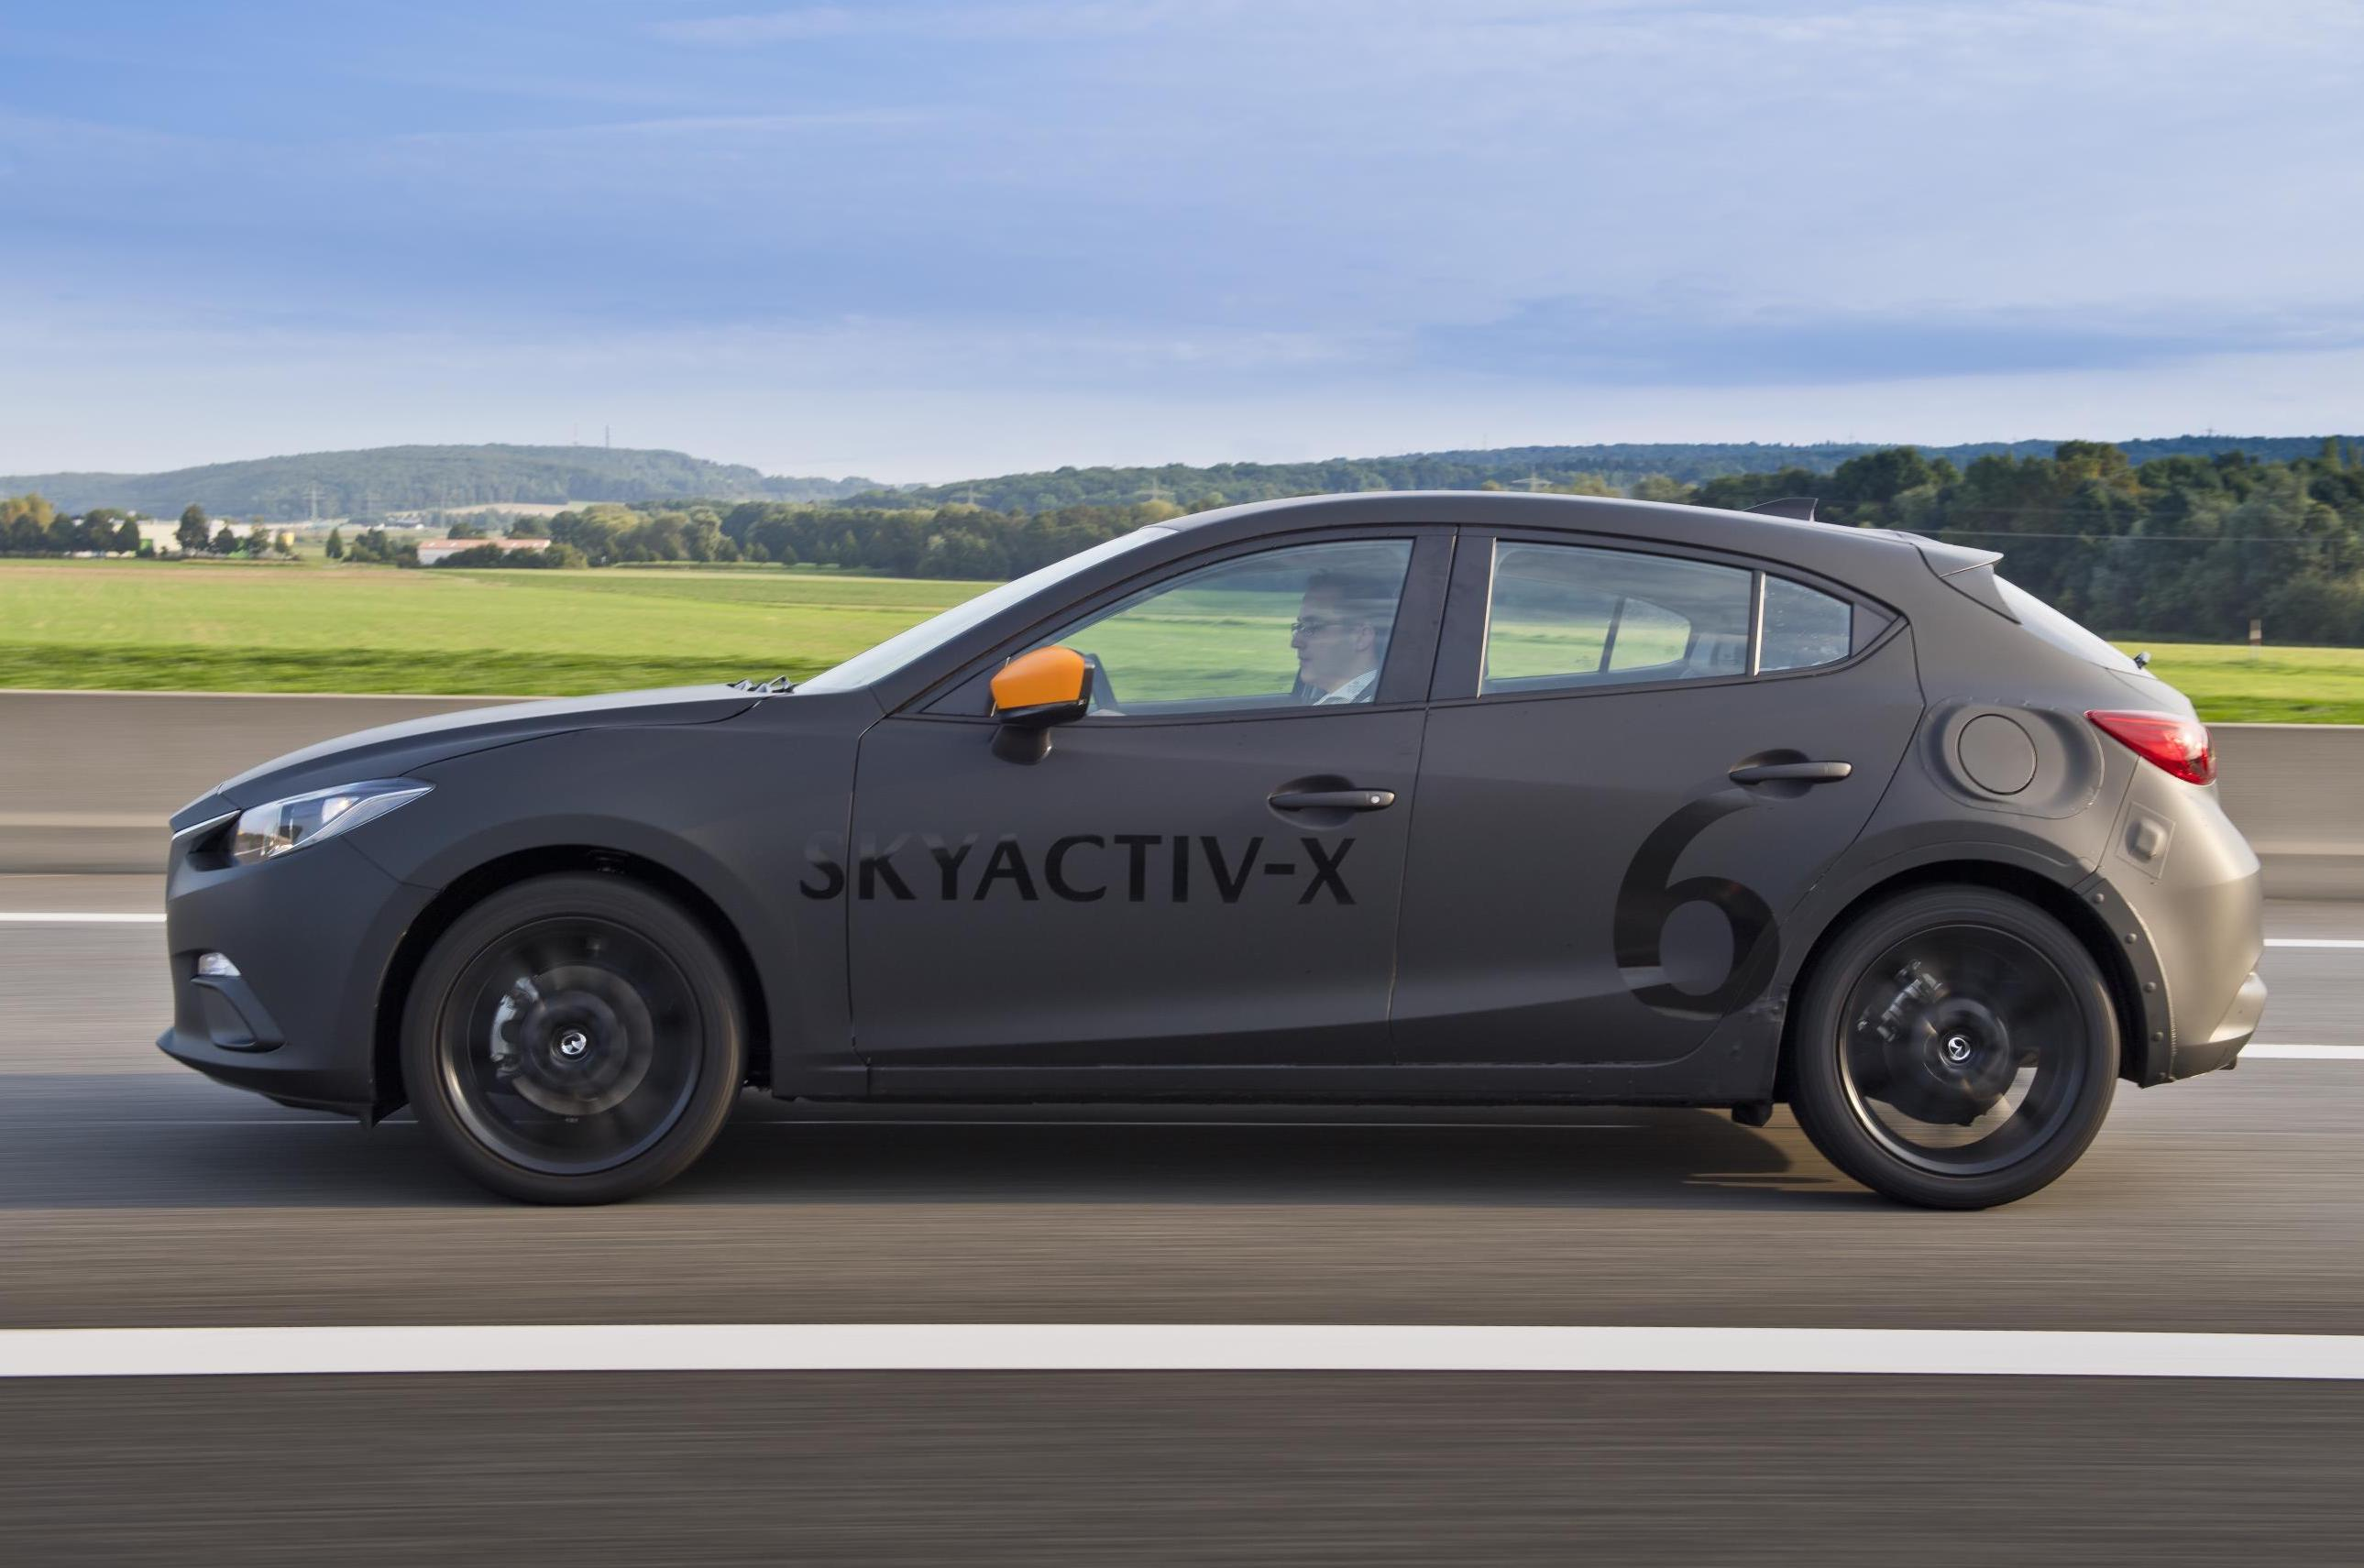 2019 mazda3 to debut at la show featuring skyactiv x tech. Black Bedroom Furniture Sets. Home Design Ideas